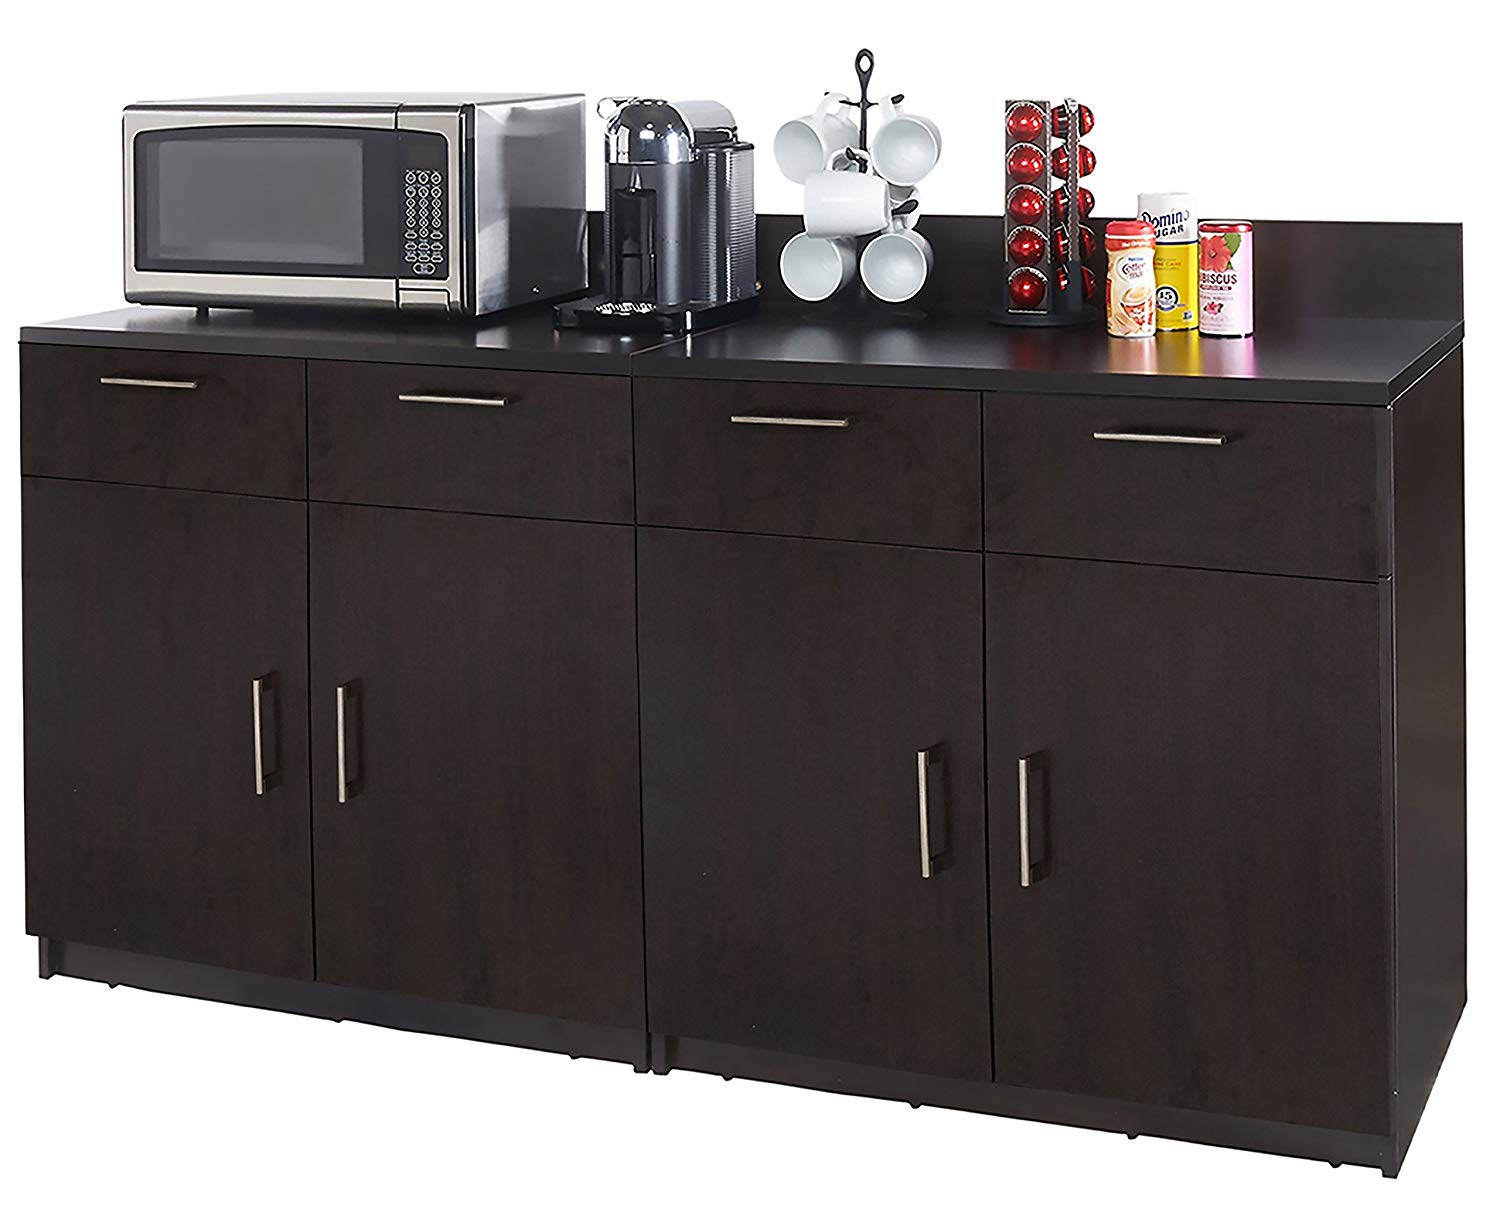 Coffee Kitchen Lunch Break Room Cabinets Model 4346 BREAKTIME 2 Piece Group Color Espresso - Factory Assembled (NOT RTA) Furniture Items ONLY.